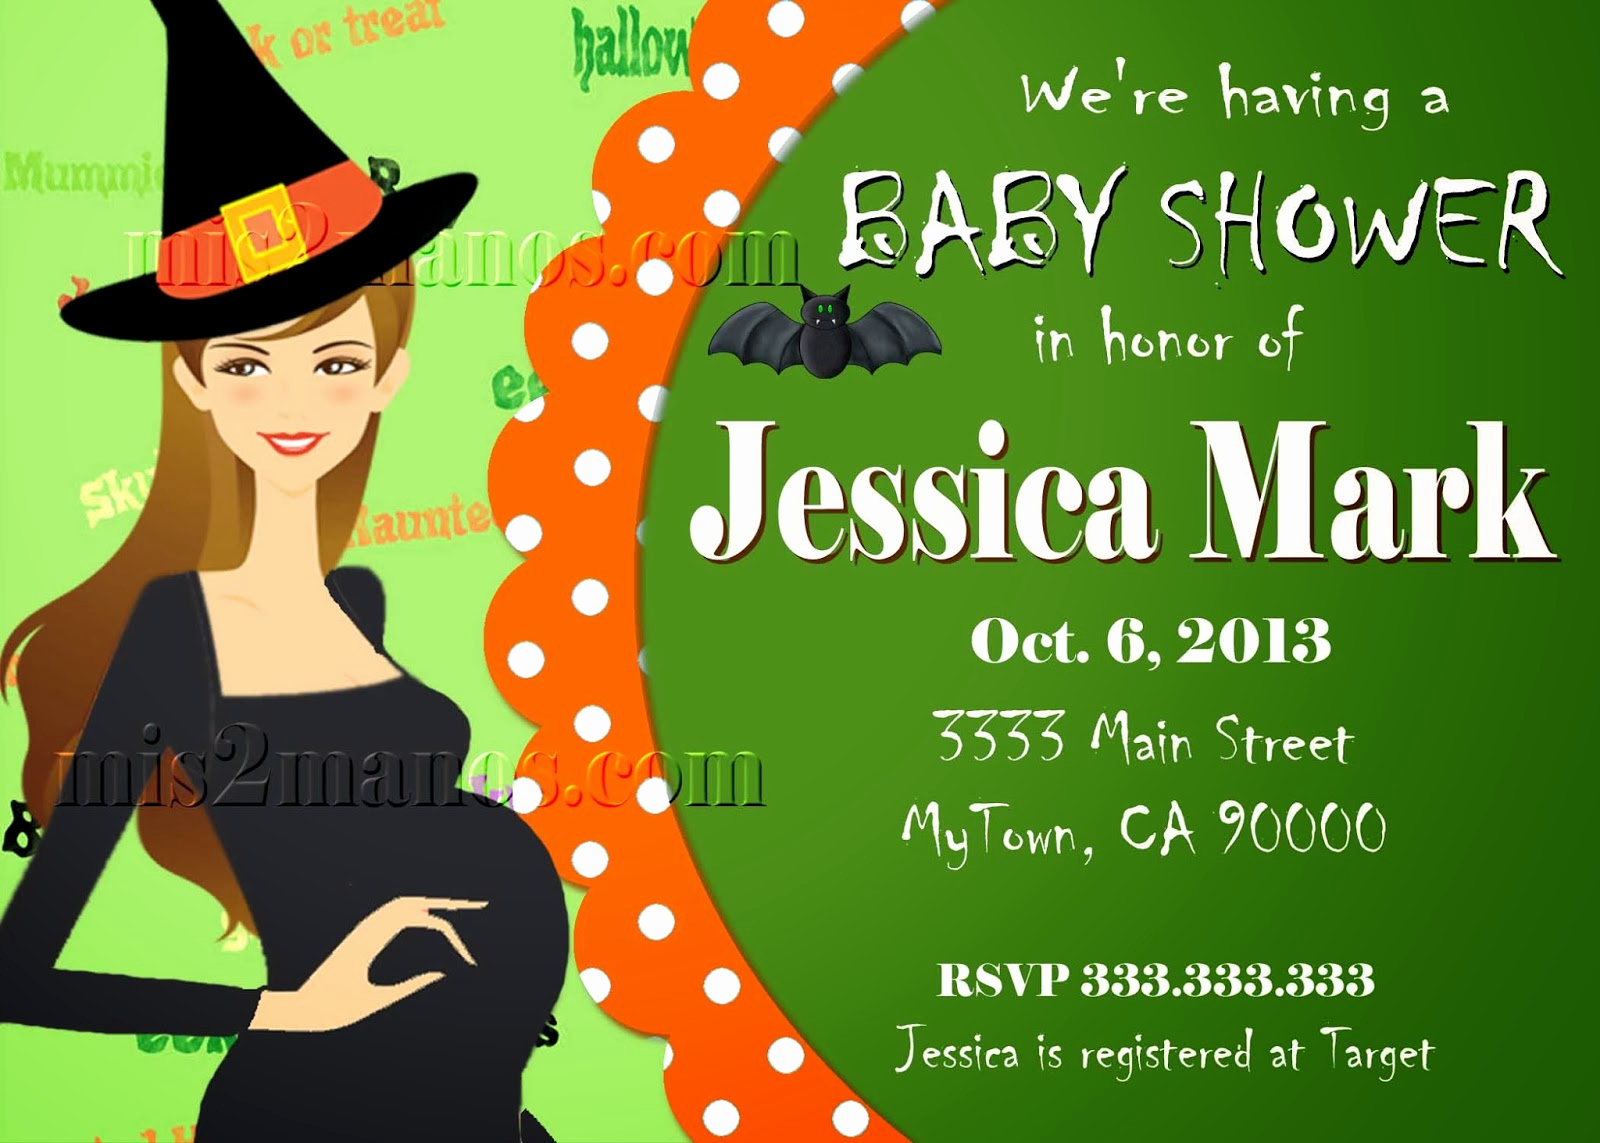 Halloween Baby Shower Invitation Best Of Mis 2 Manos Made by My Hands Halloween Baby Shower